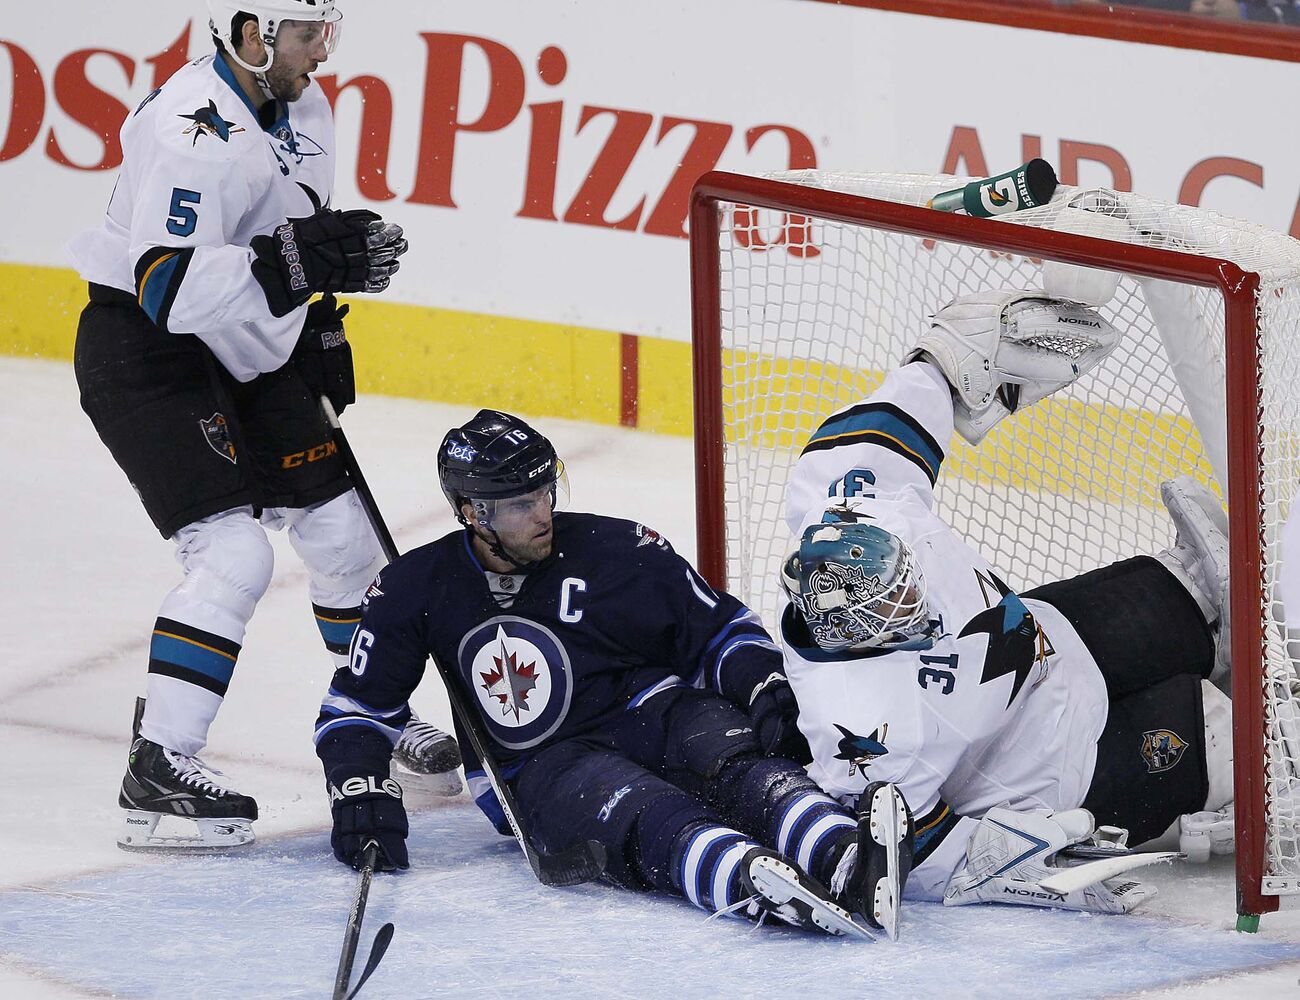 Winnipeg Jets' Andrew Ladd (16)¤ crashes into San Jose Sharks' goaltender Antti Niemi (31) after being hooked by Sharks' Jason Demers (5) in third period action.